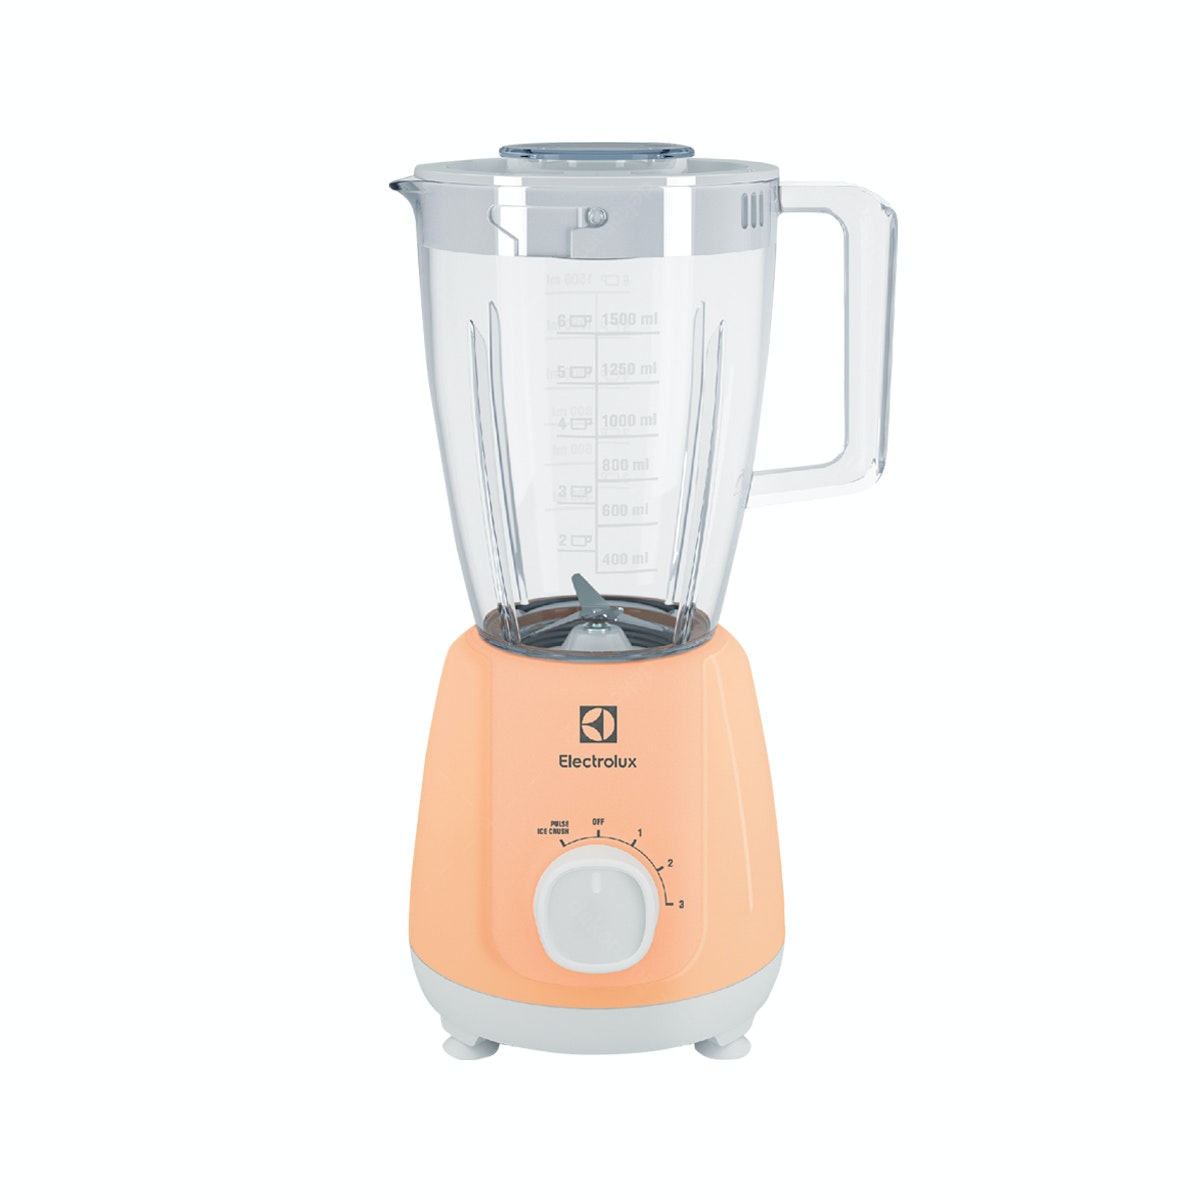 Electrolux Blender EBR 3526 Orange